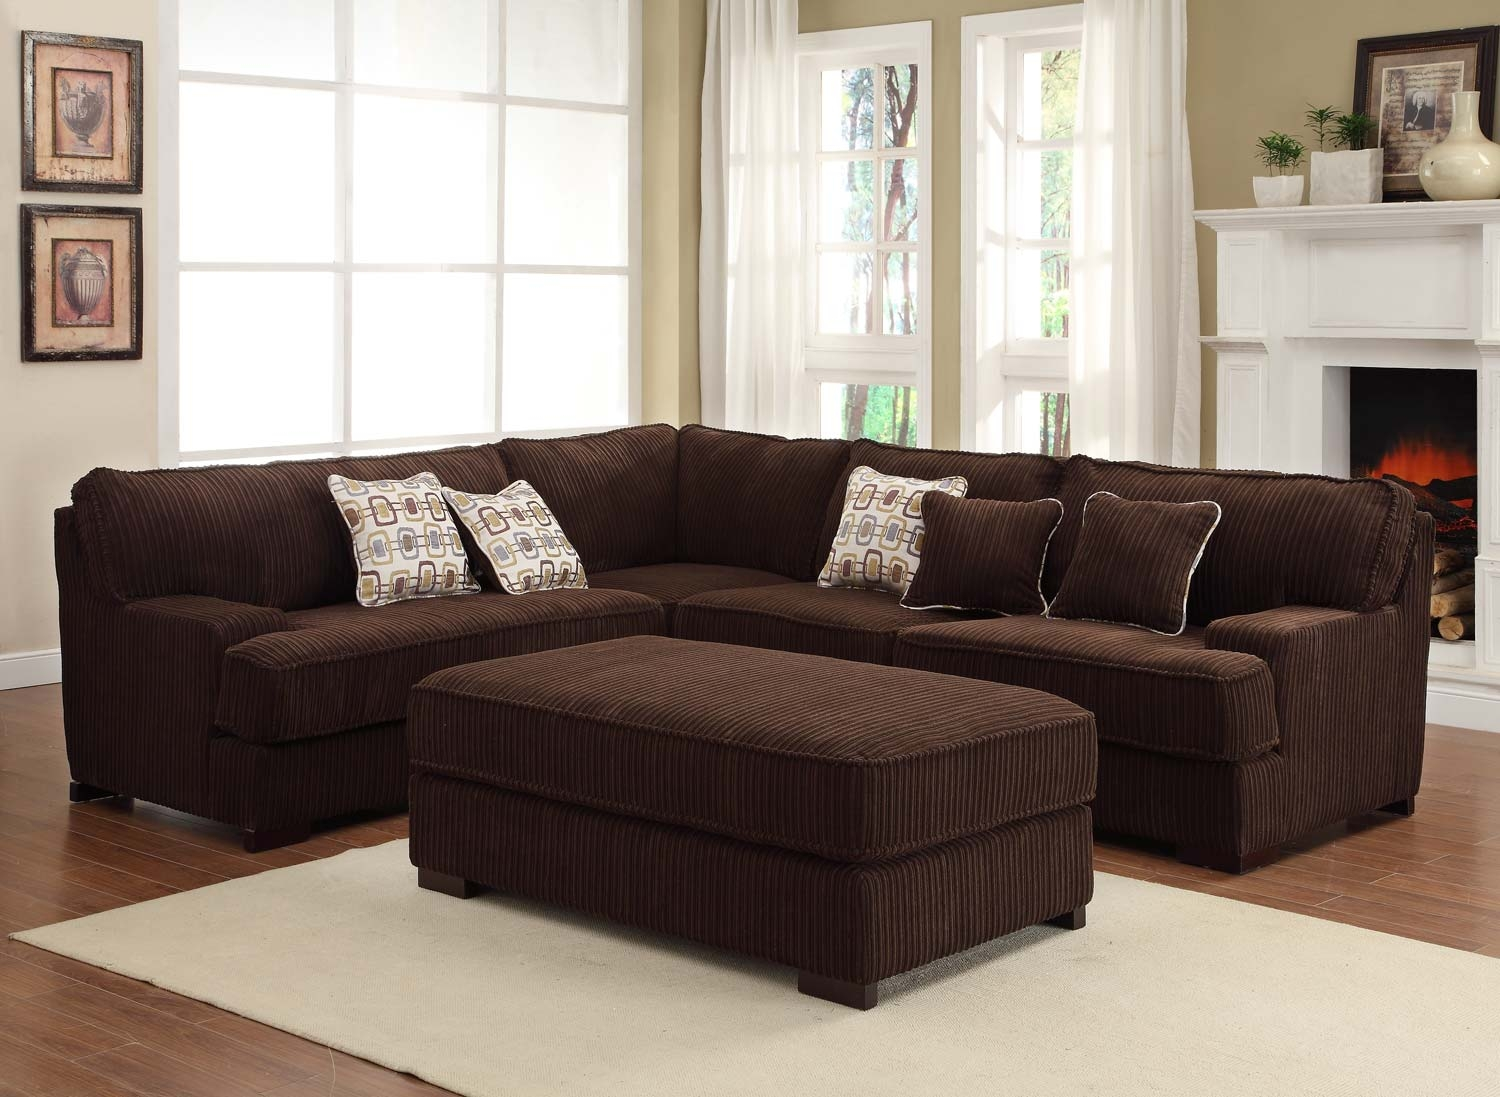 Chocolate Brown Sectional Sofas 12 Photo Of Chocolate ...